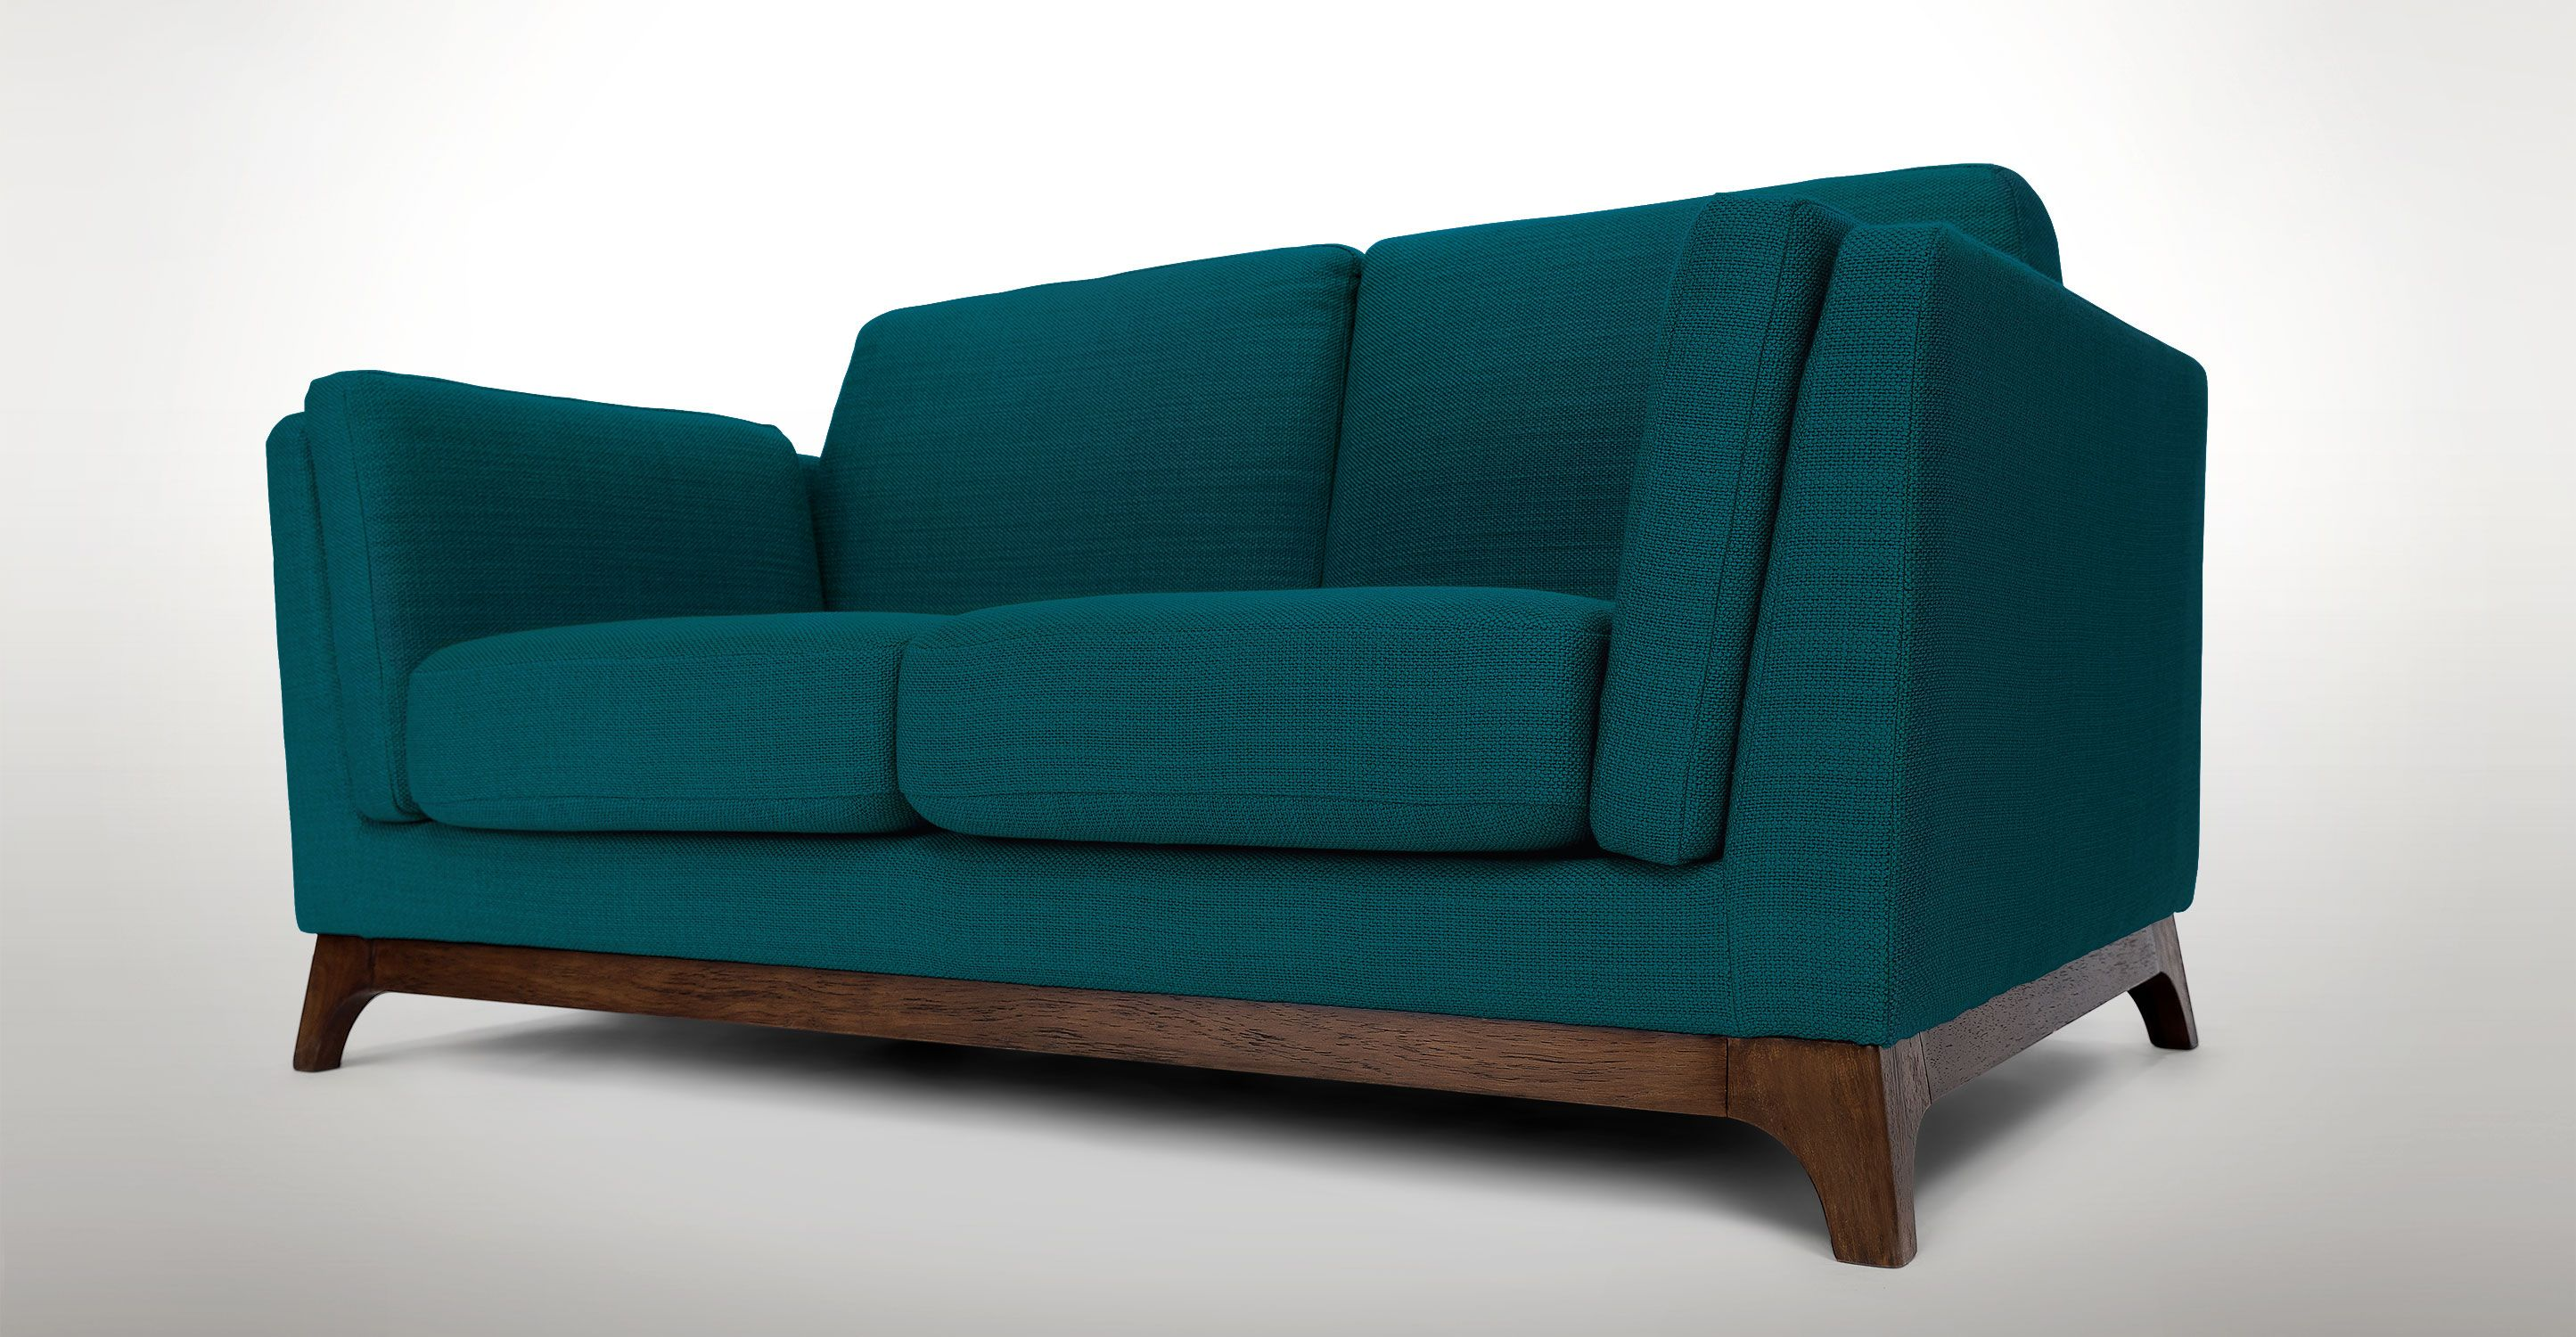 Lagoon Blue Loveseat With Solid Wood Legs Article Ceni Modern